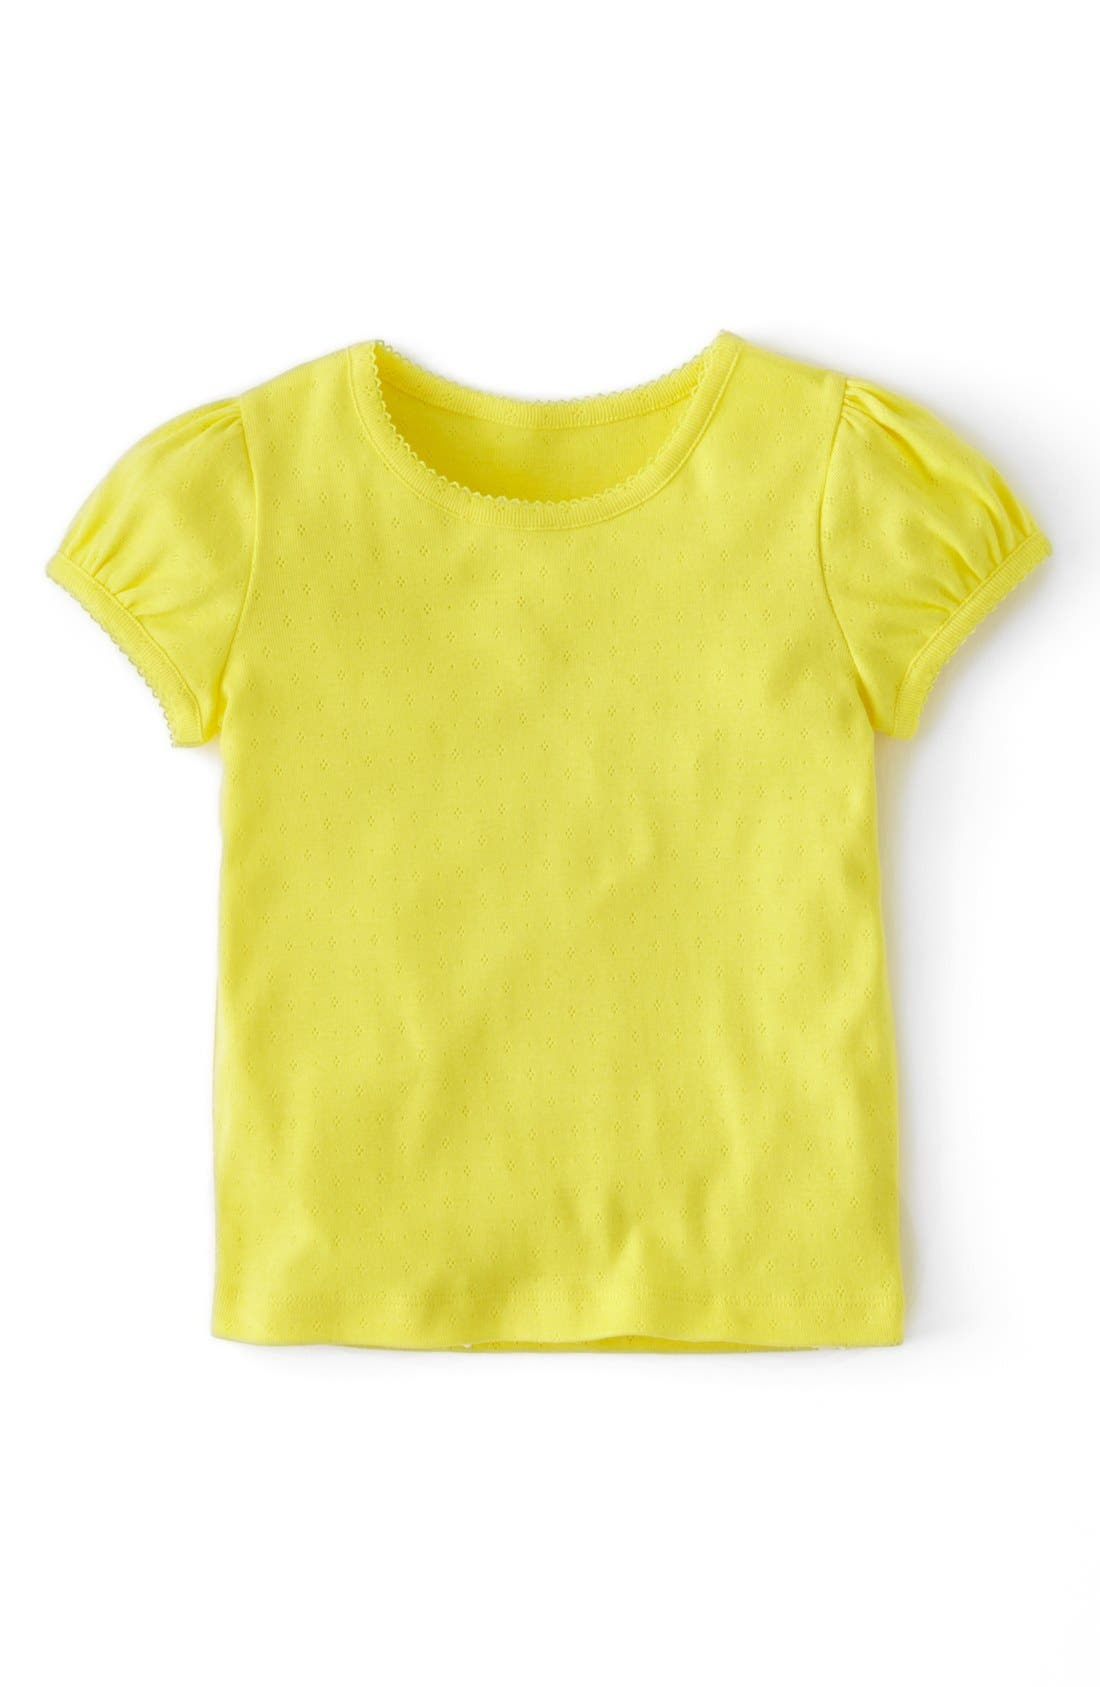 Main Image - Mini Boden Pointelle Cap Sleeve Tee (Toddler Girls, Little Girls & Big Girls)